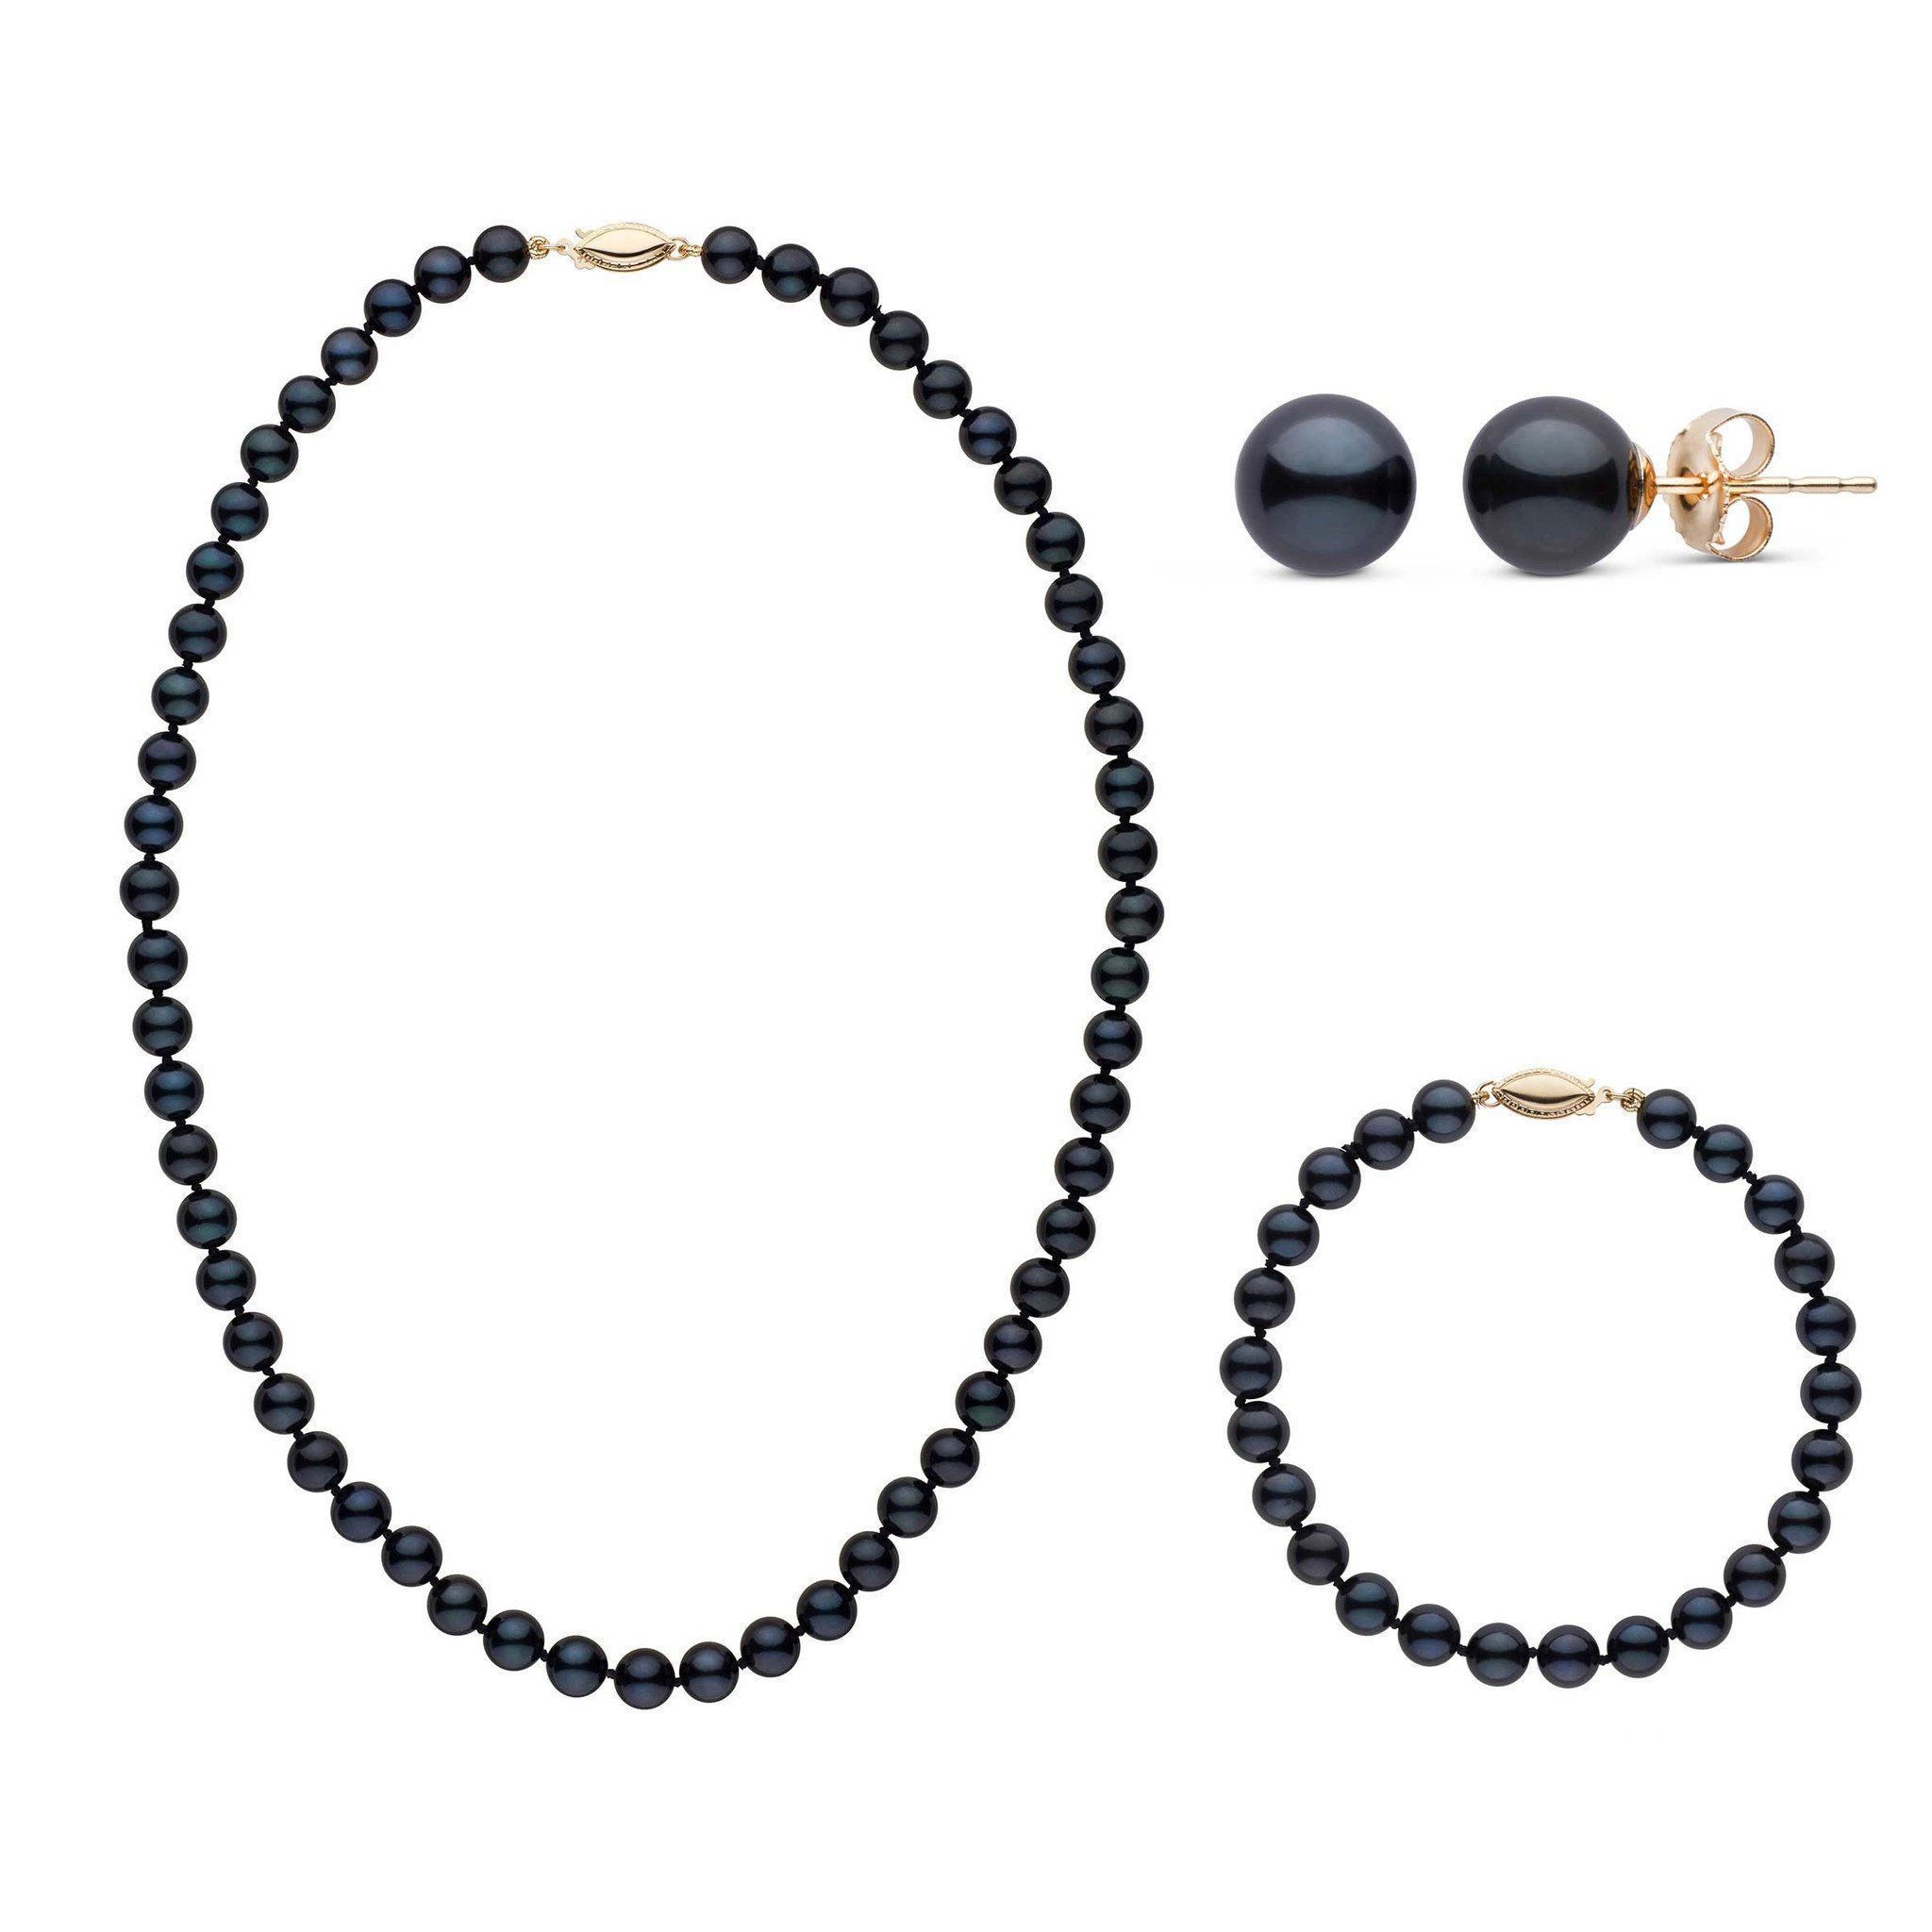 16 Inch 3 Piece Set of 6.5-7.0 mm AA+ Black Akoya Pearls